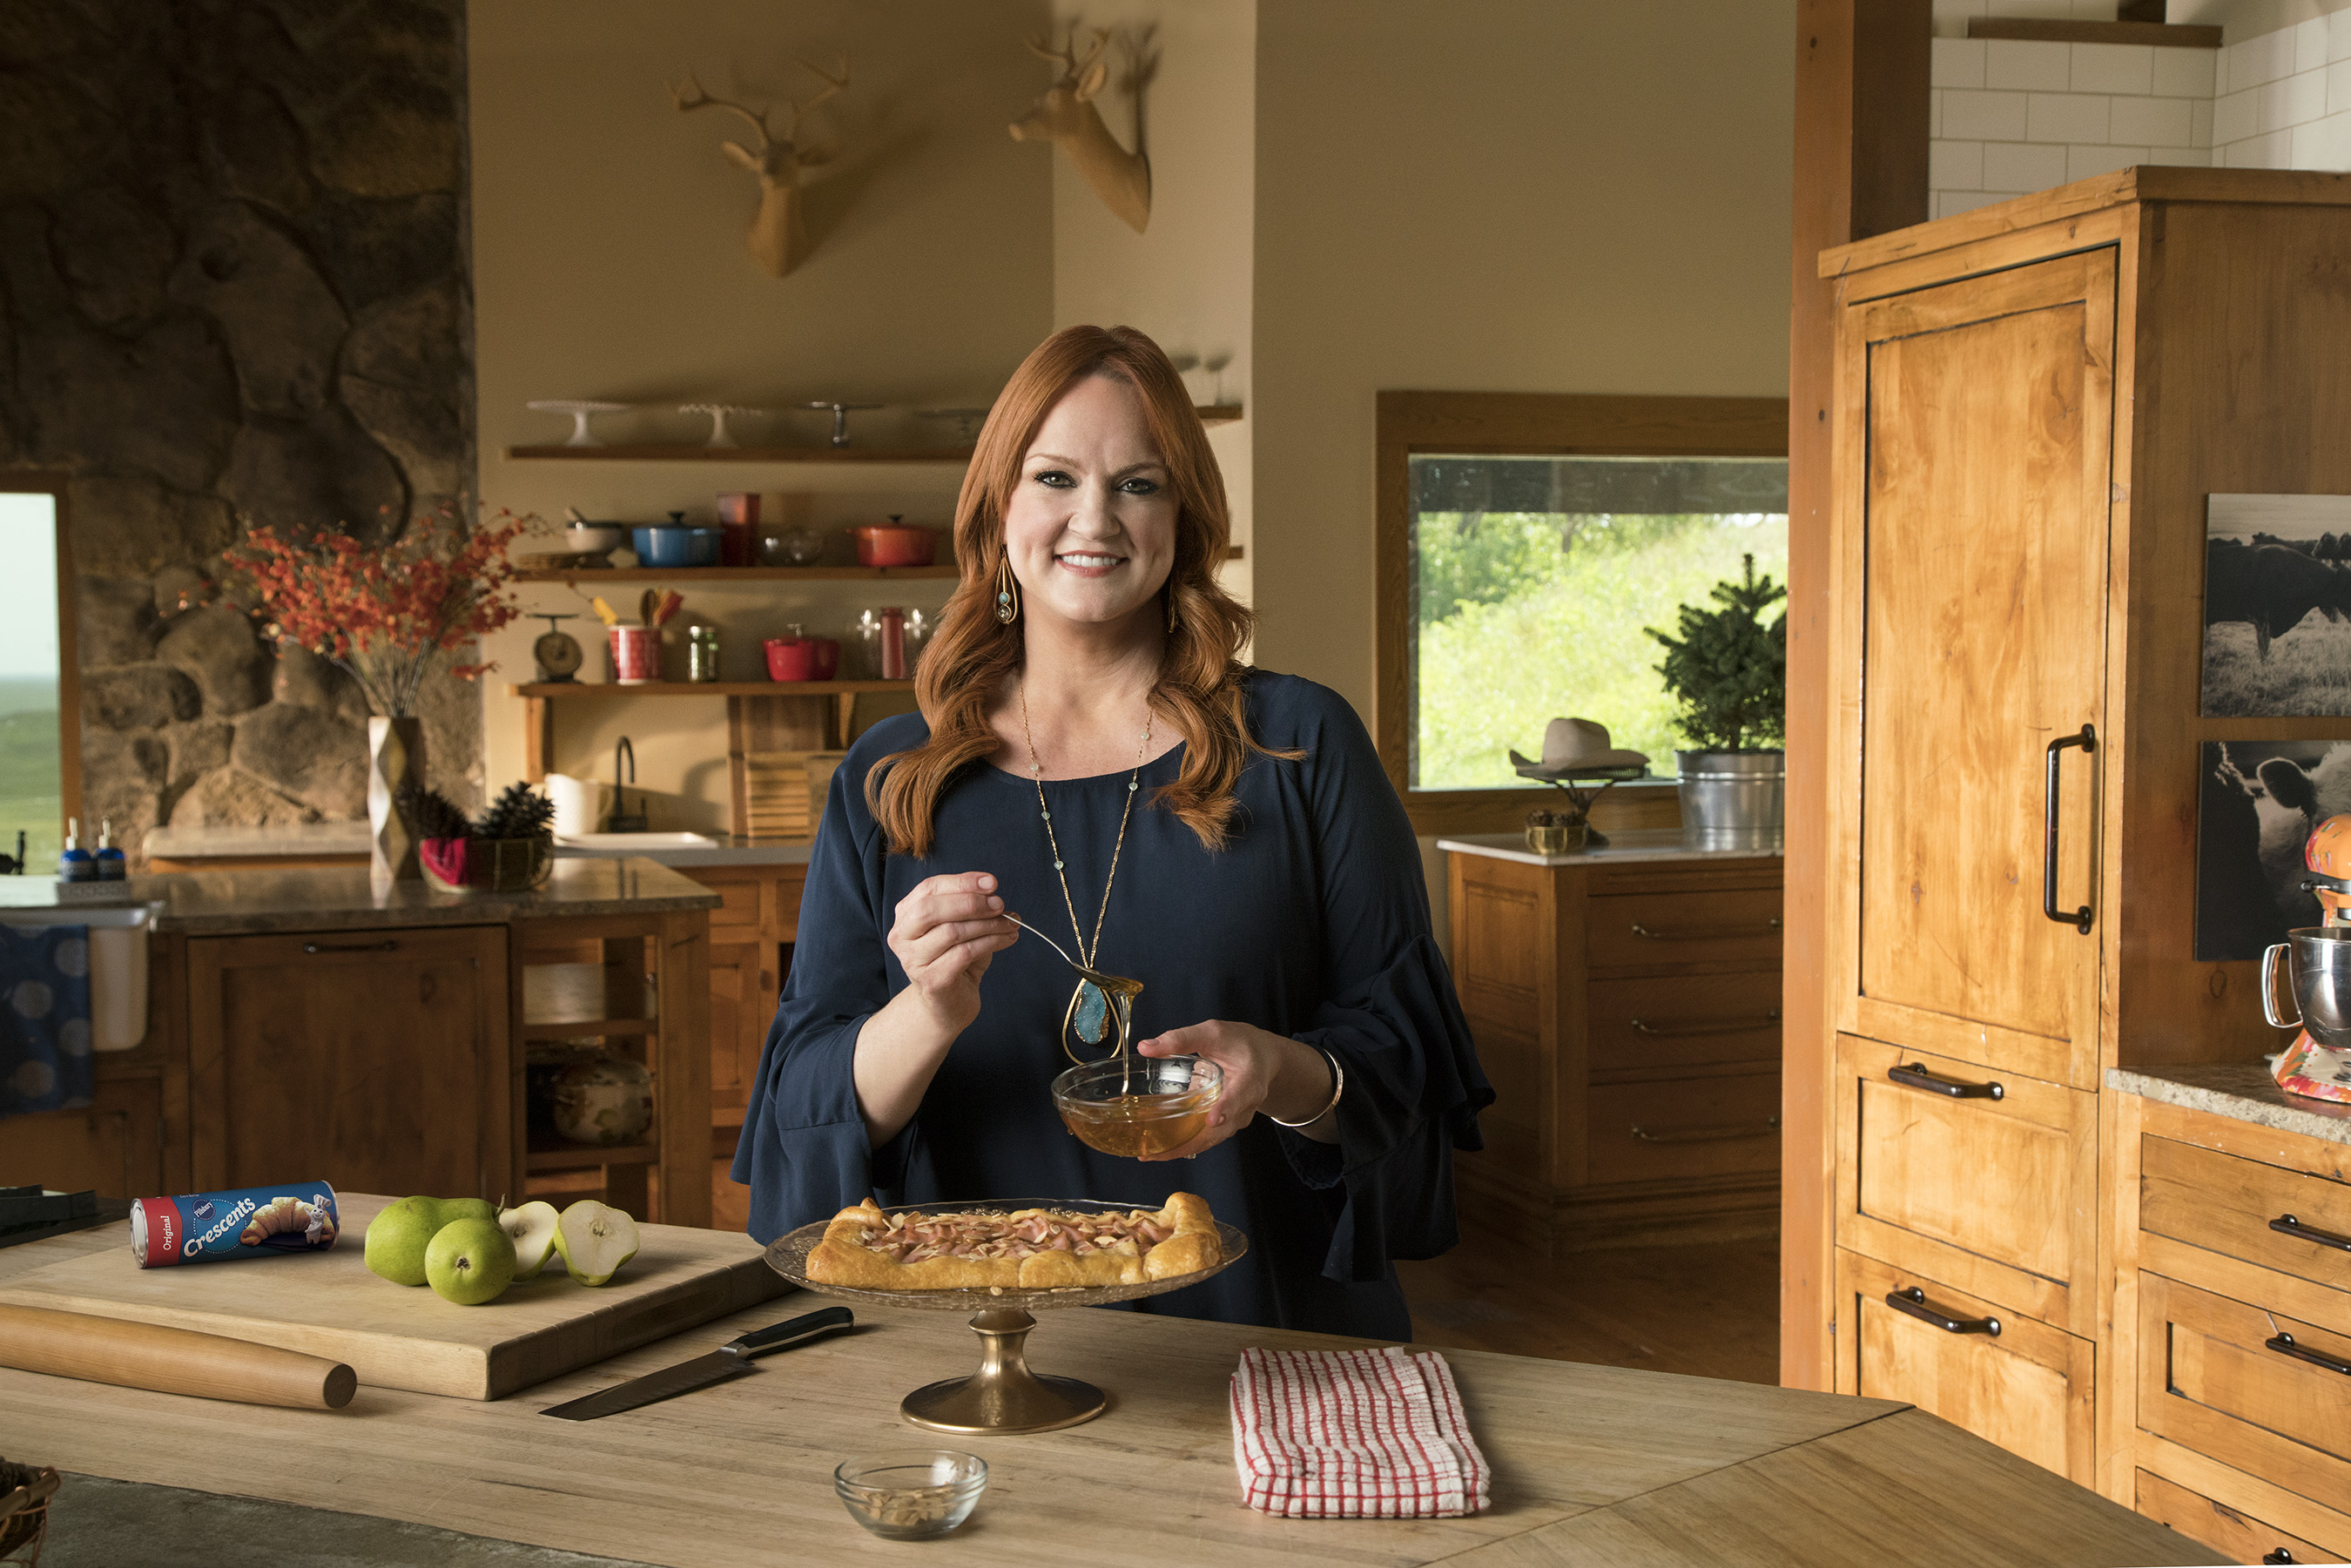 Pillsbury Partners With Food Network And Ree Drummond